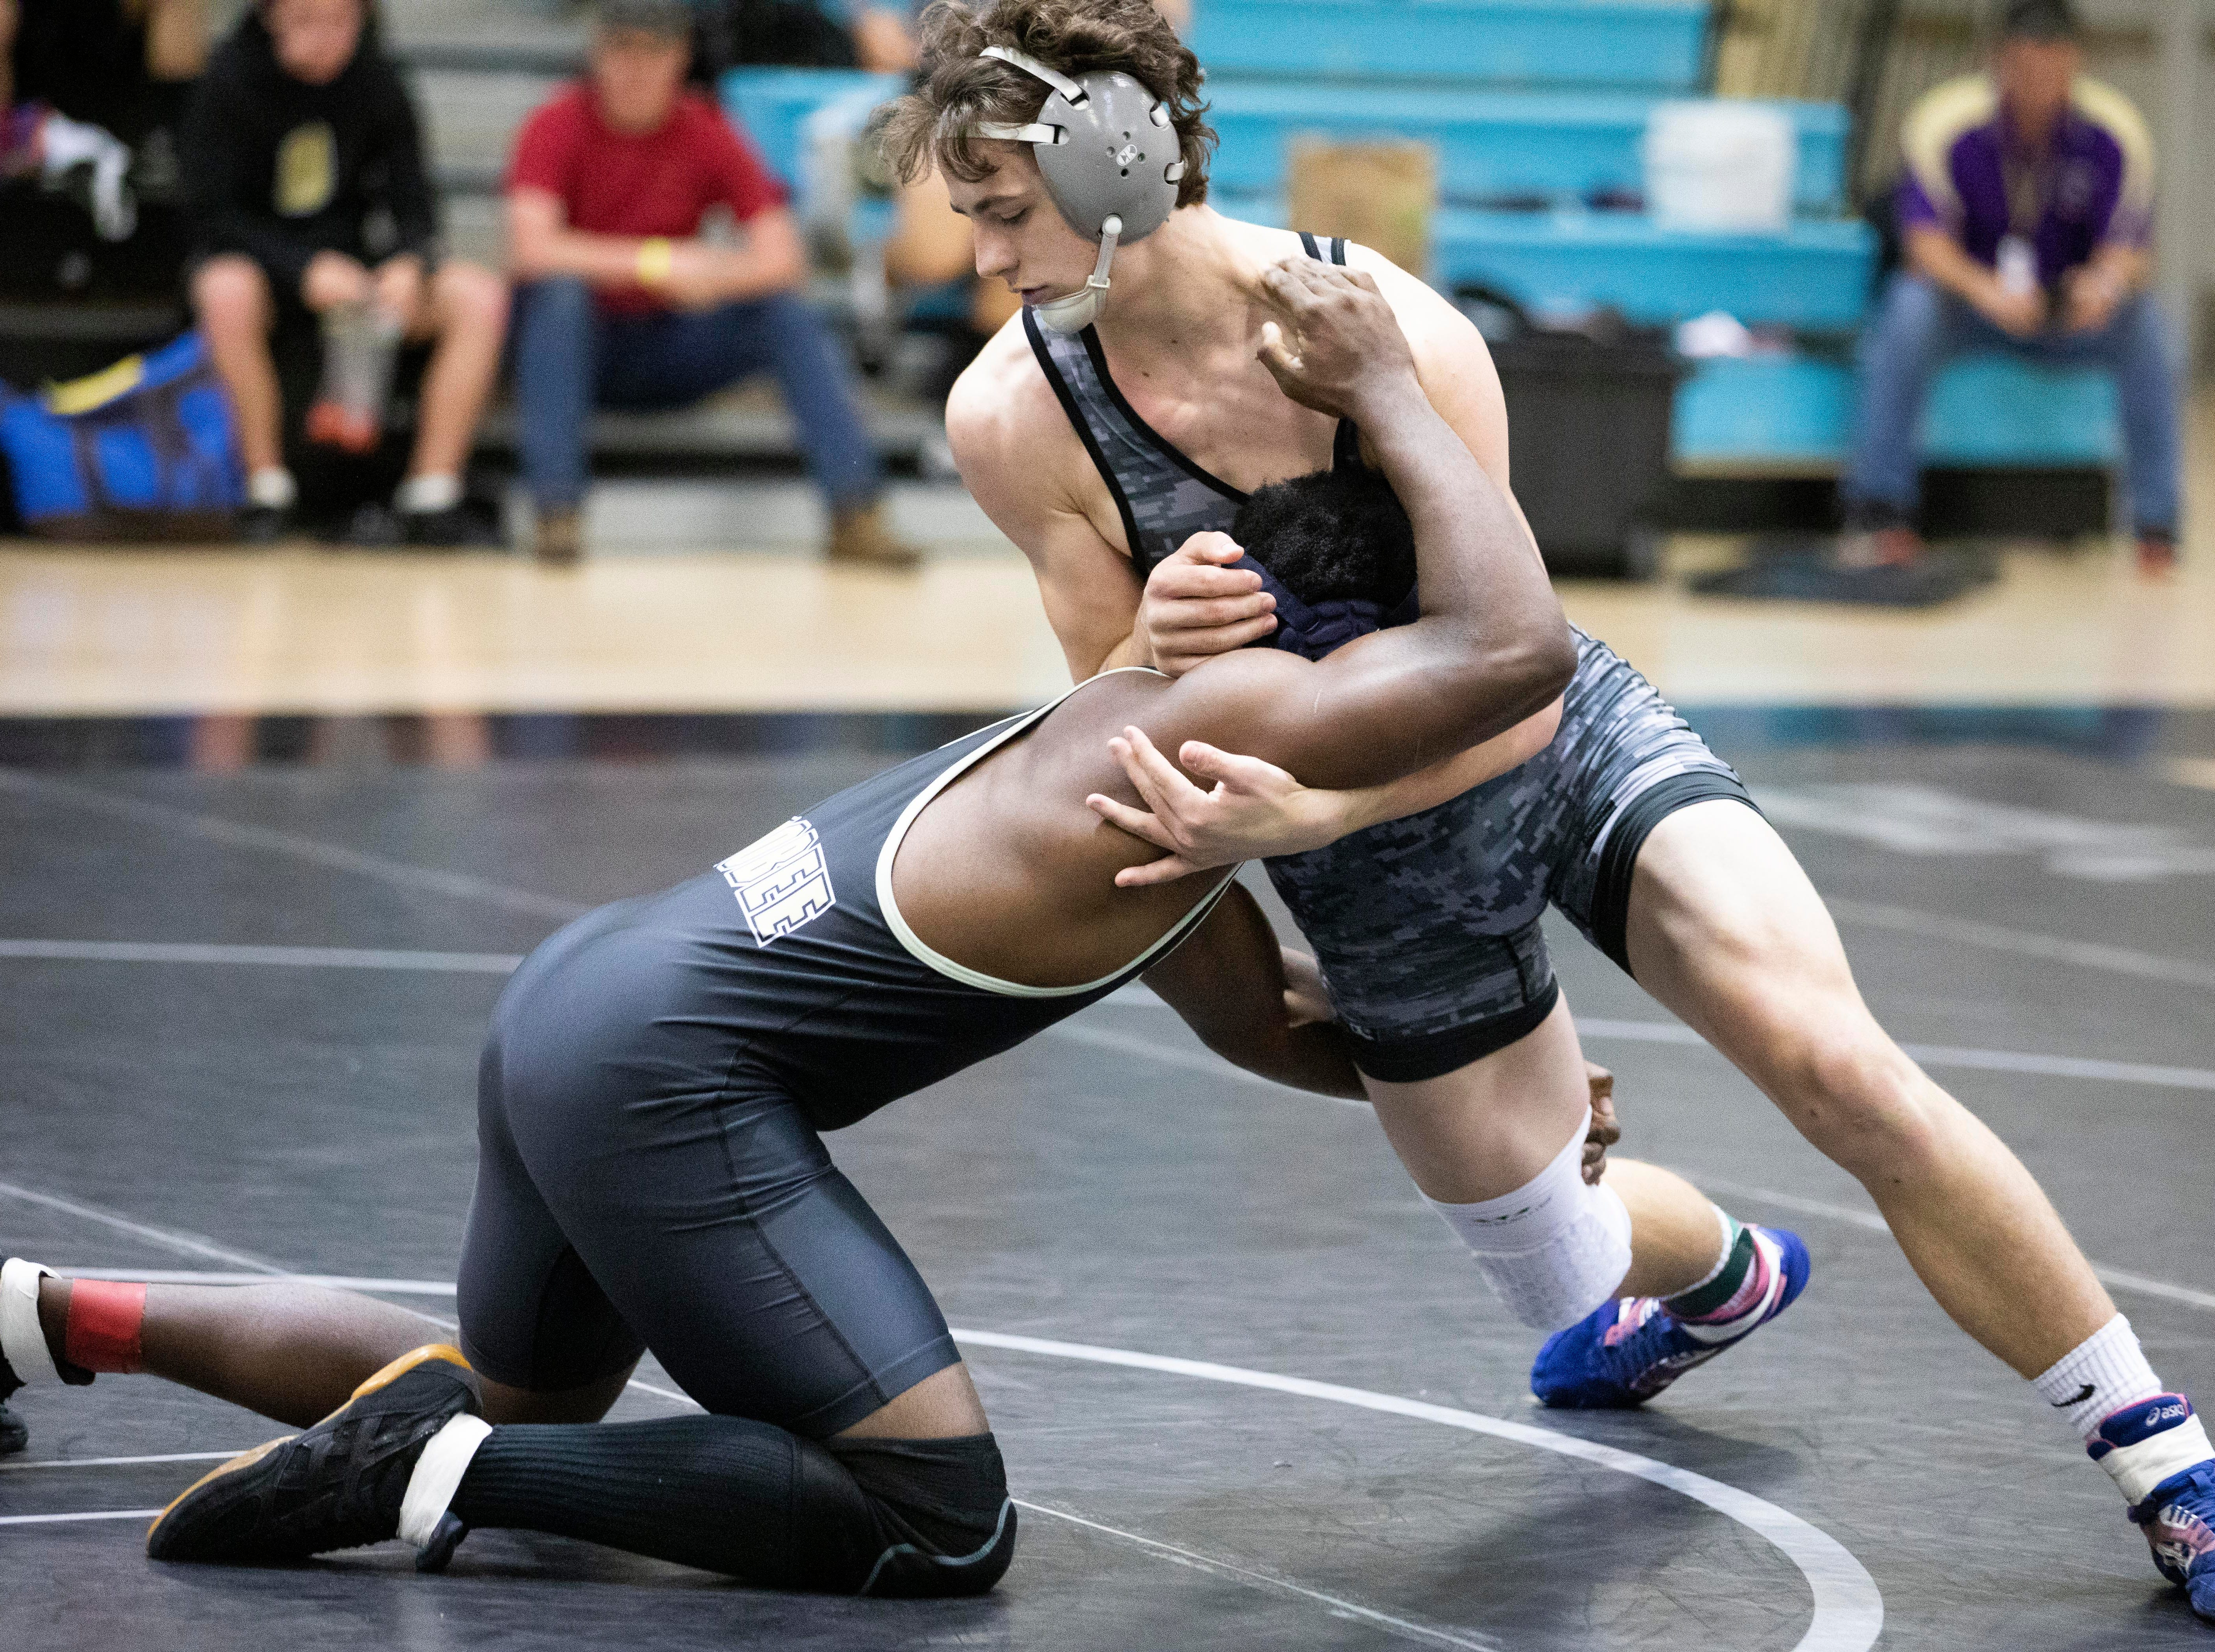 Jensen Beach's Andrew Burnette (top) wrestles against Isaac Herron of Okeechobee during the District 14-2A wrestling tournament on Friday, Feb. 22, 2019, in Jensen Beach. Burnette won his match with a fall at 3:21, and Jensen Beach won the tournament with 249.5 points. Okeechobee finished second with 153.5 points.